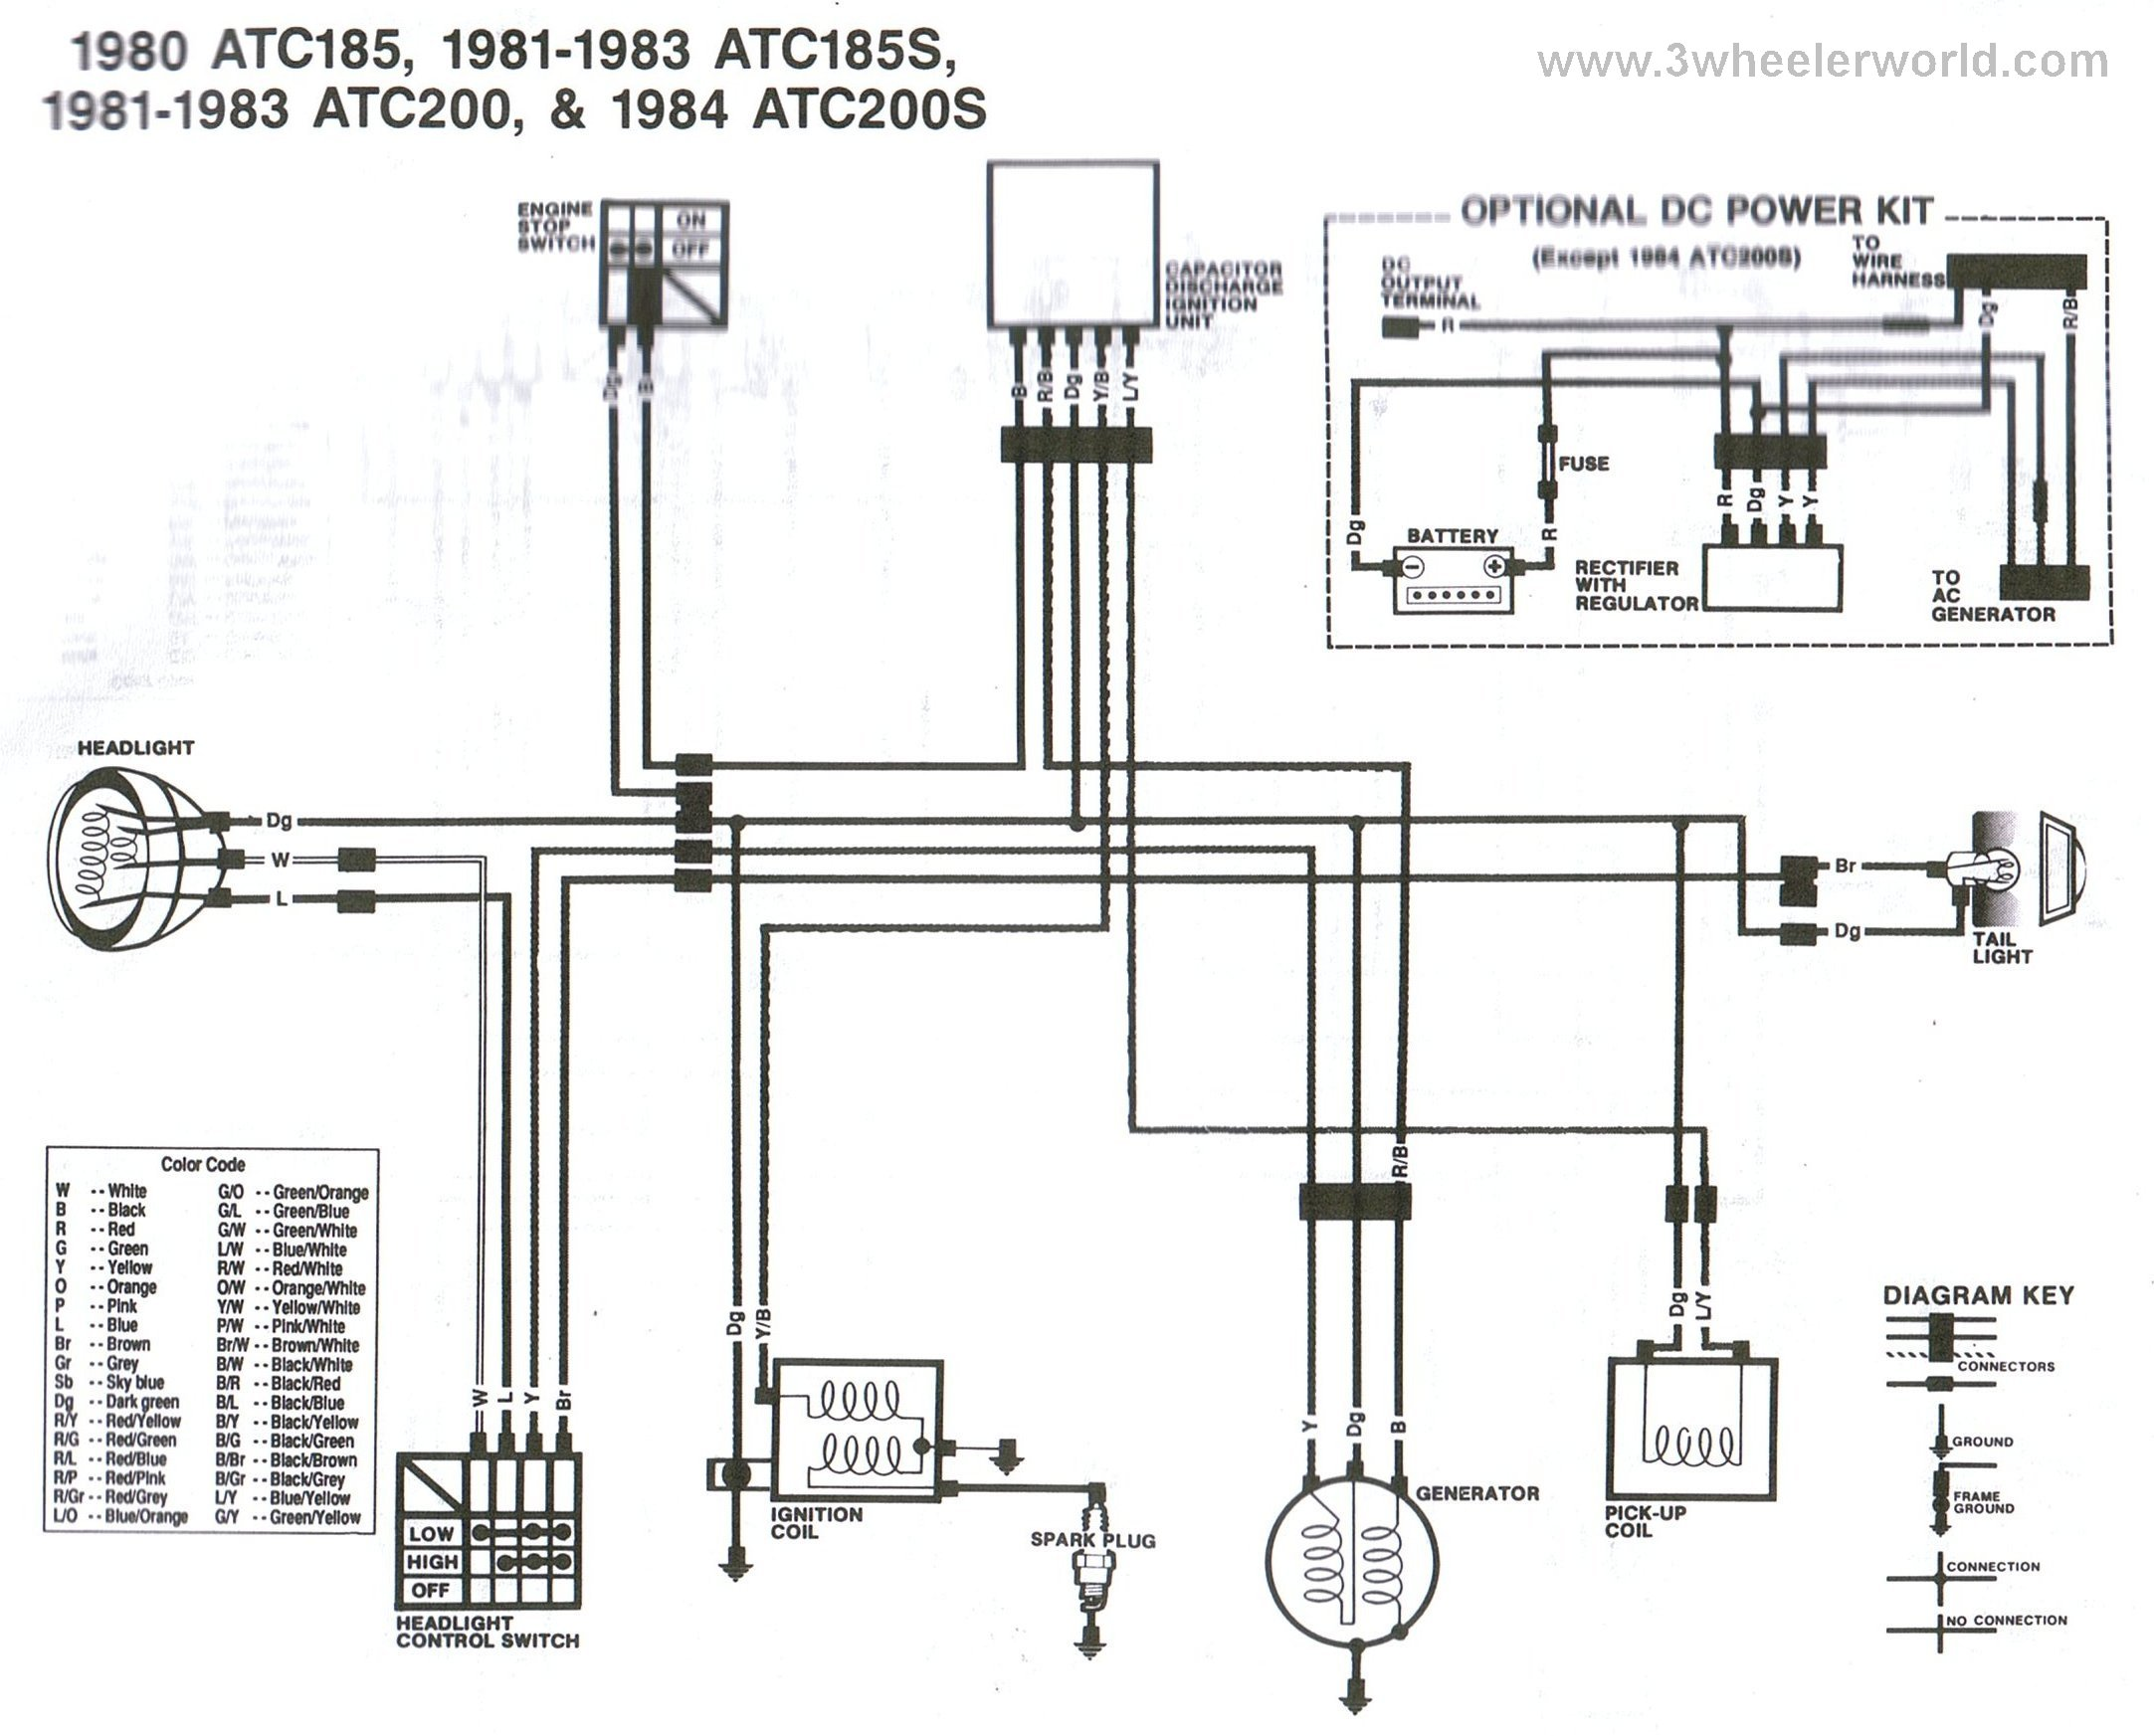 Wiring Diagram Electrical Of Kawasaki Klt 200 Library Honda 200es Schematics Rh Thyl Co Uk 1982